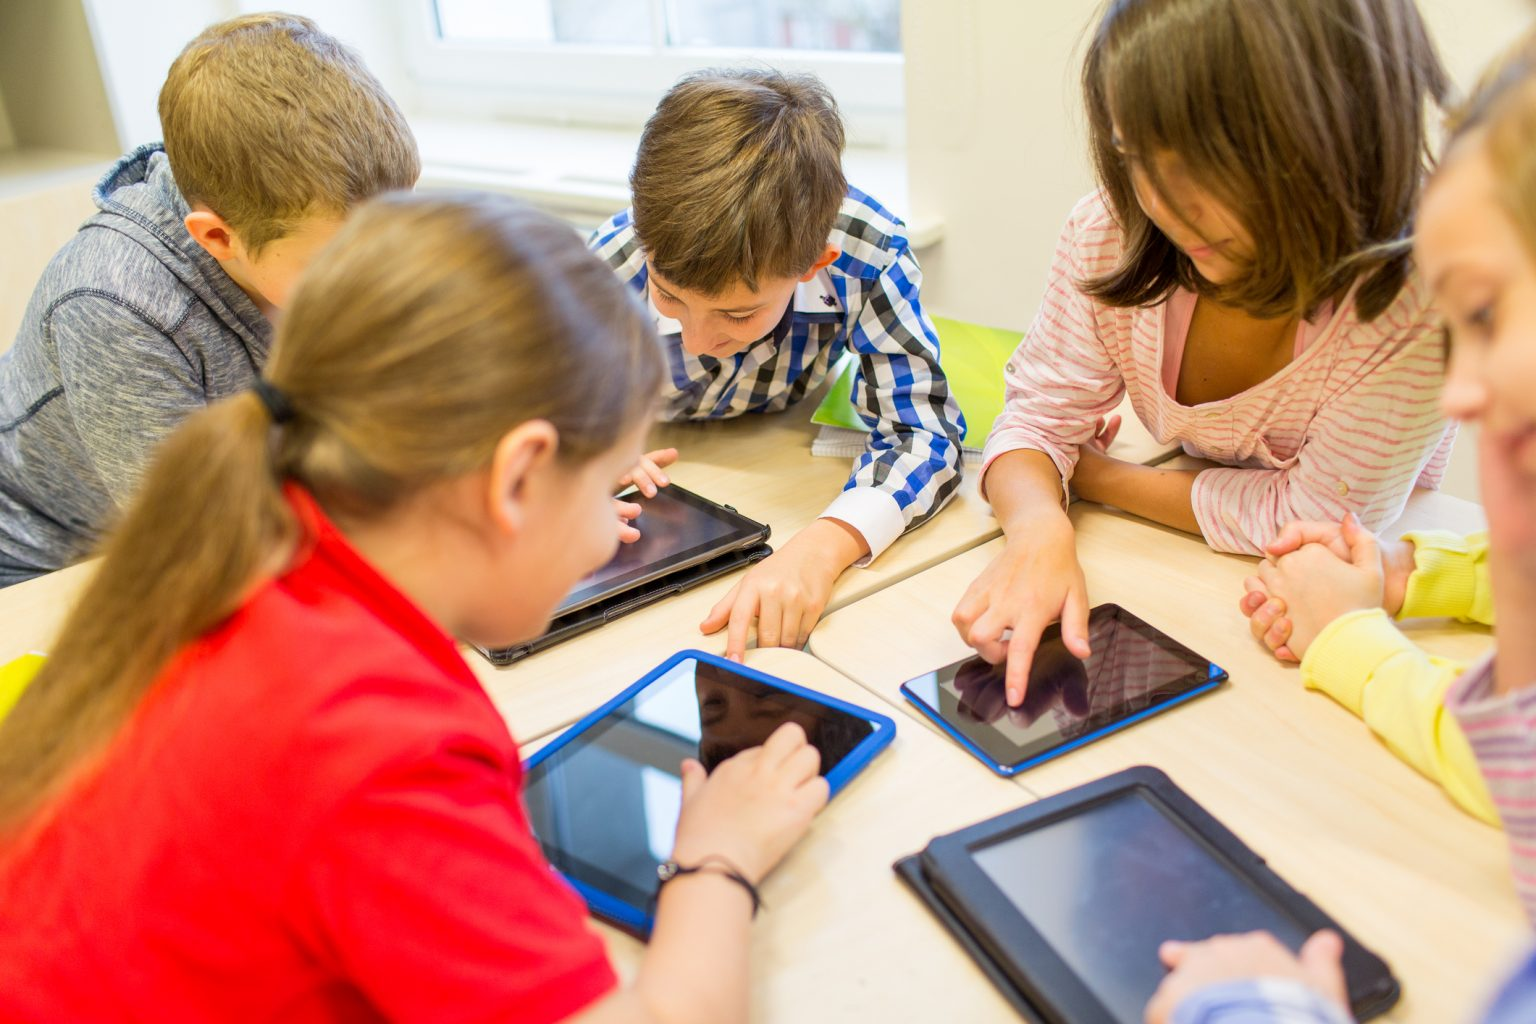 emf protection for kids in school wifi in classroom and at home